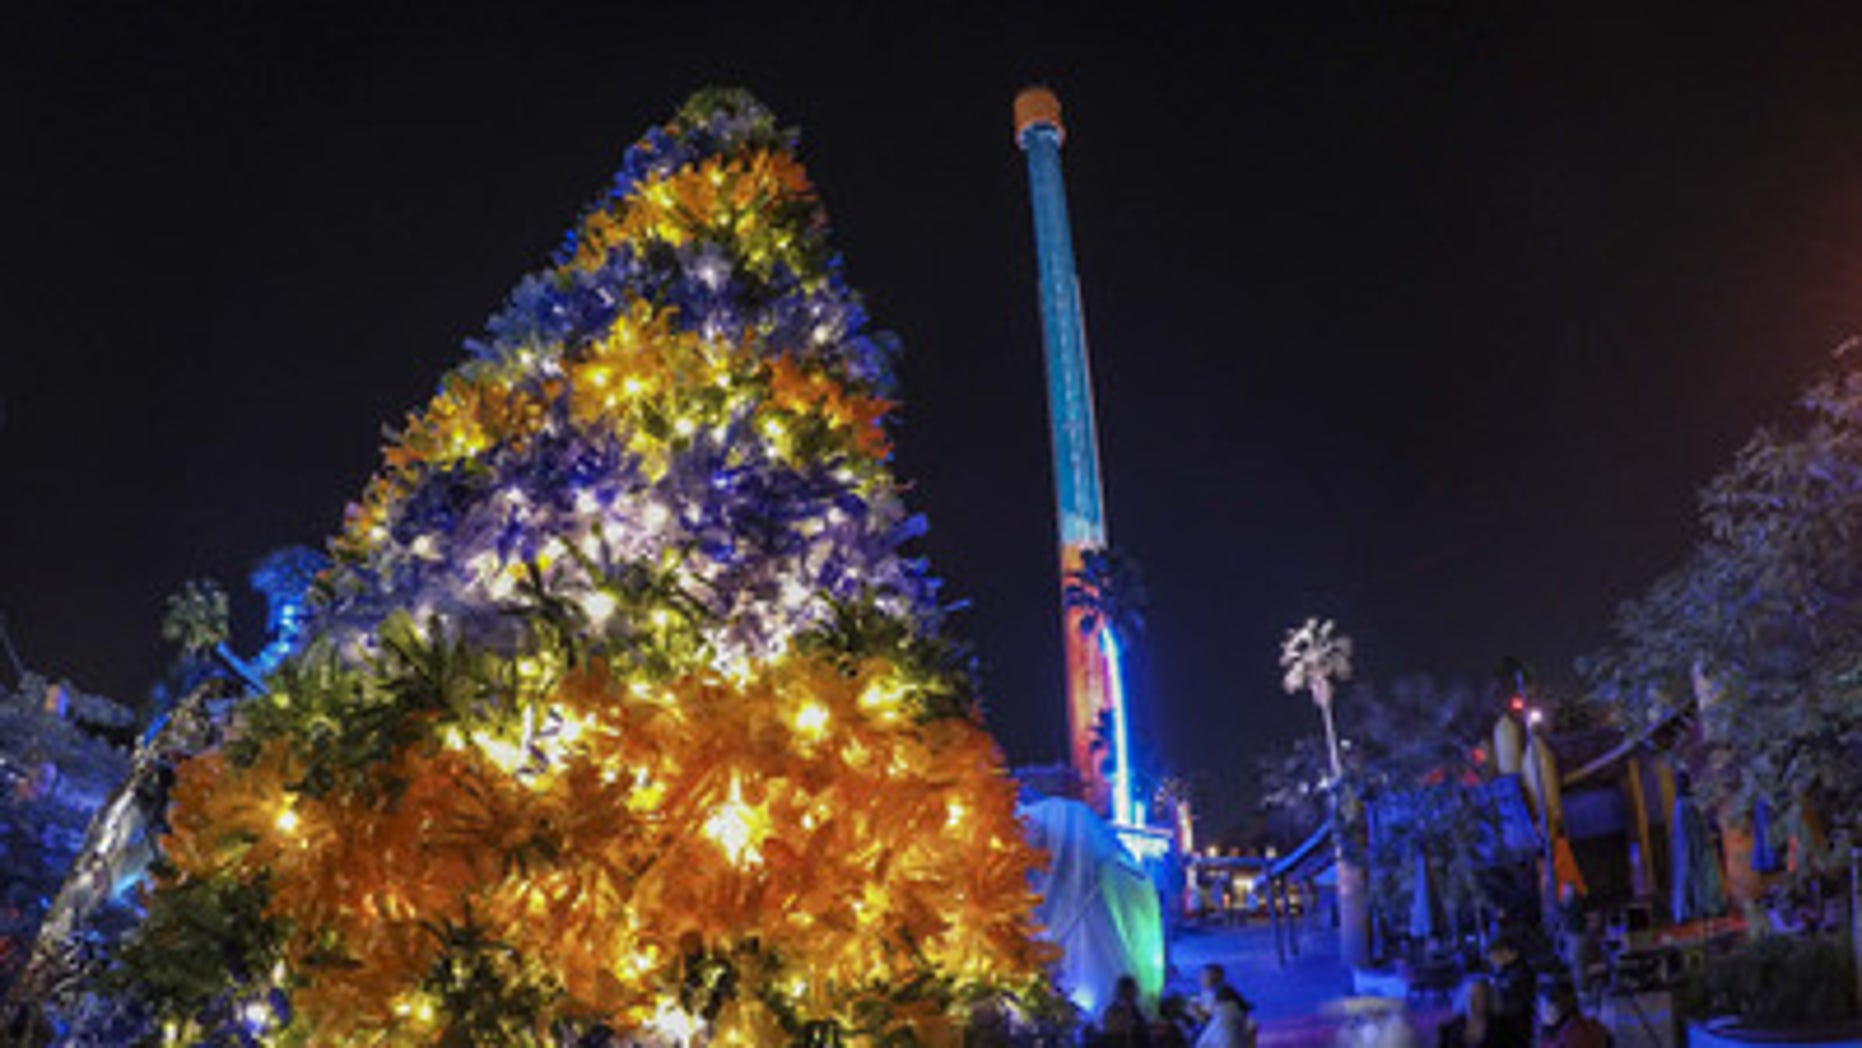 Tampa-area schools helped transform thousands of recycled plastic bottles into The Bottle Christmas Tree, on display at Busch Gardens Tampa's Christmas Town holiday celebration.